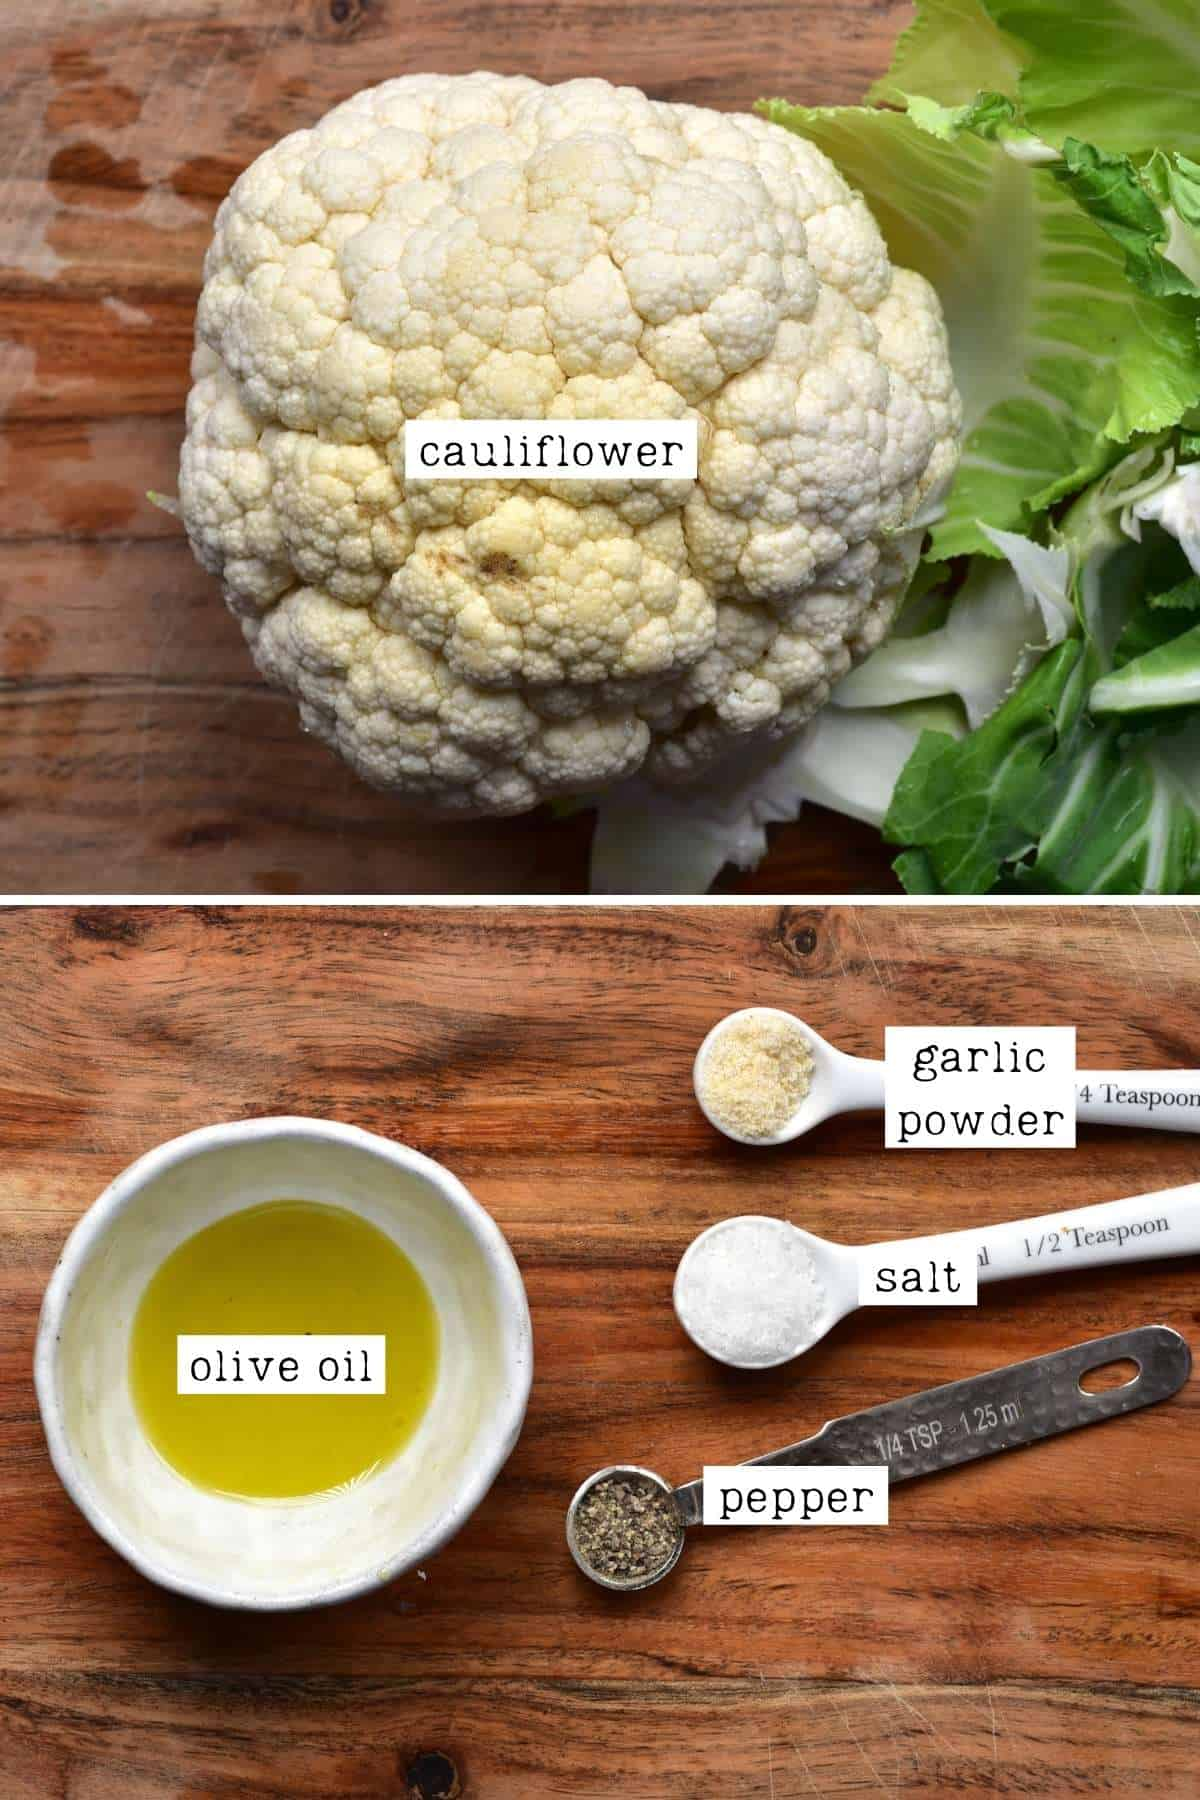 Ingredients for baked cauliflower